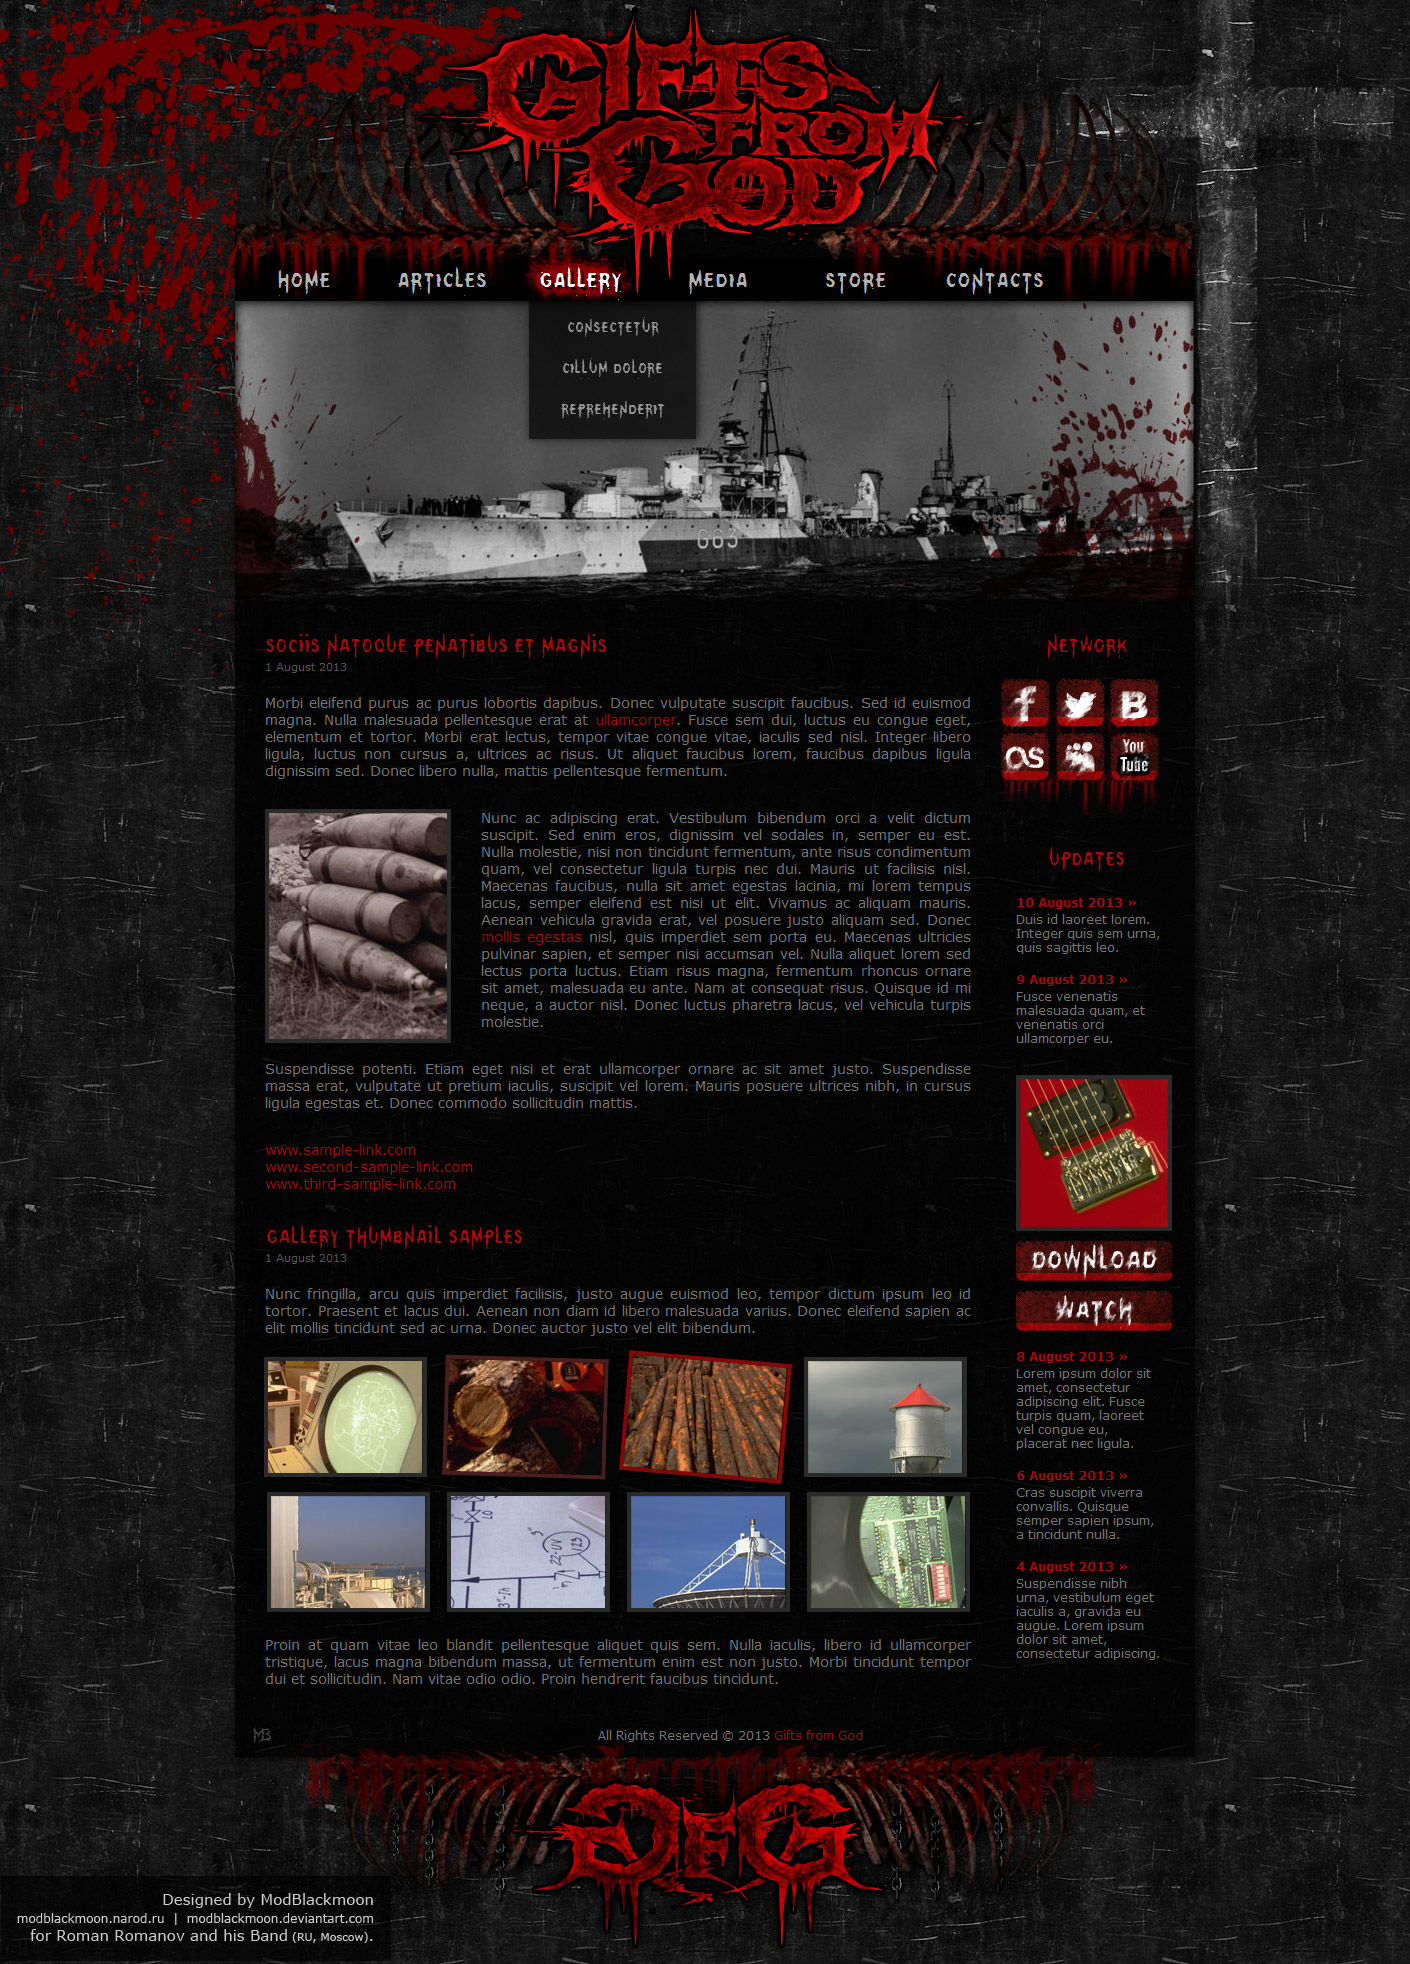 modblackmoon unique dark grunge gothic horror web design. Black Bedroom Furniture Sets. Home Design Ideas